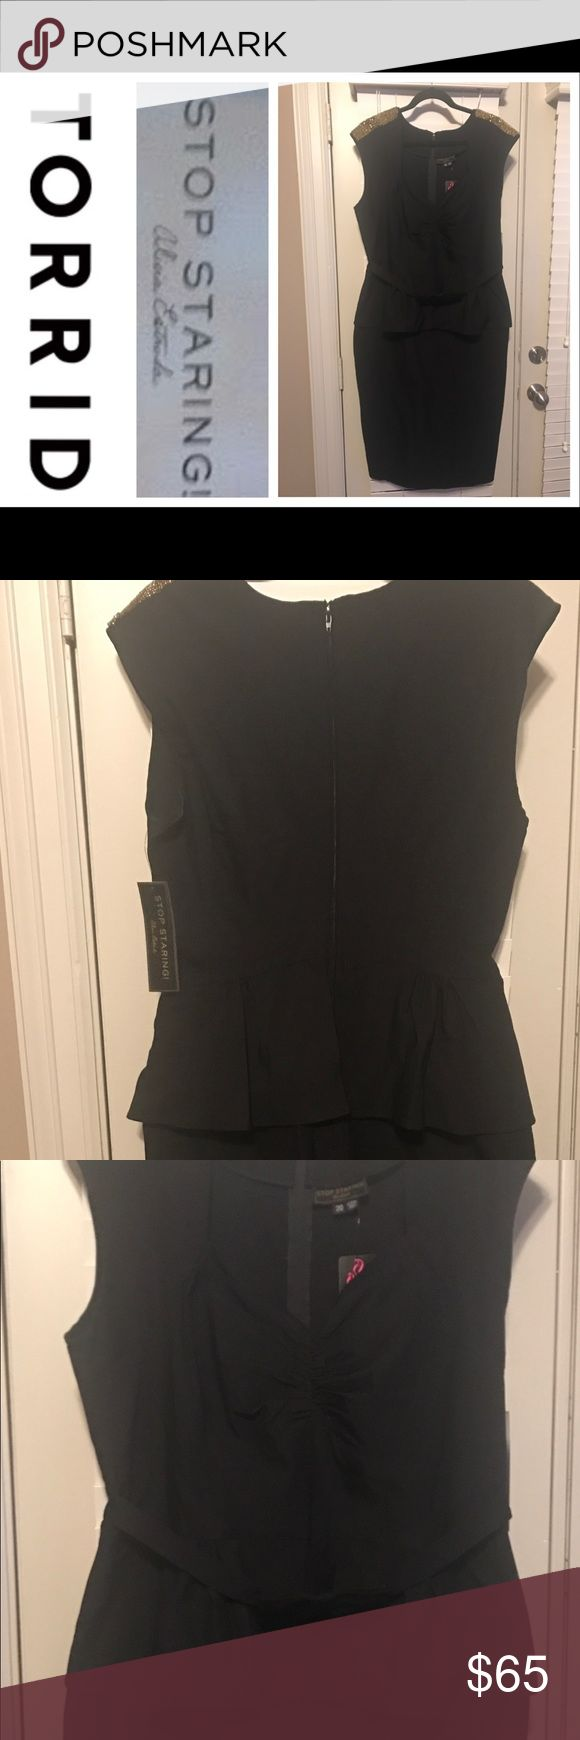 Torrid/Alias Estrada NWT Beaded Peplum Dress NWT! Torrid/Alias Estrada black Peplum dress with gold beaded shoulders. This dress is hot!!! The top has somewhat of a sweetheart cut with a Peplum waist and bow. Zipper on back. Torrid size 20! It has some stretch to it if needed! torrid Dresses Midi